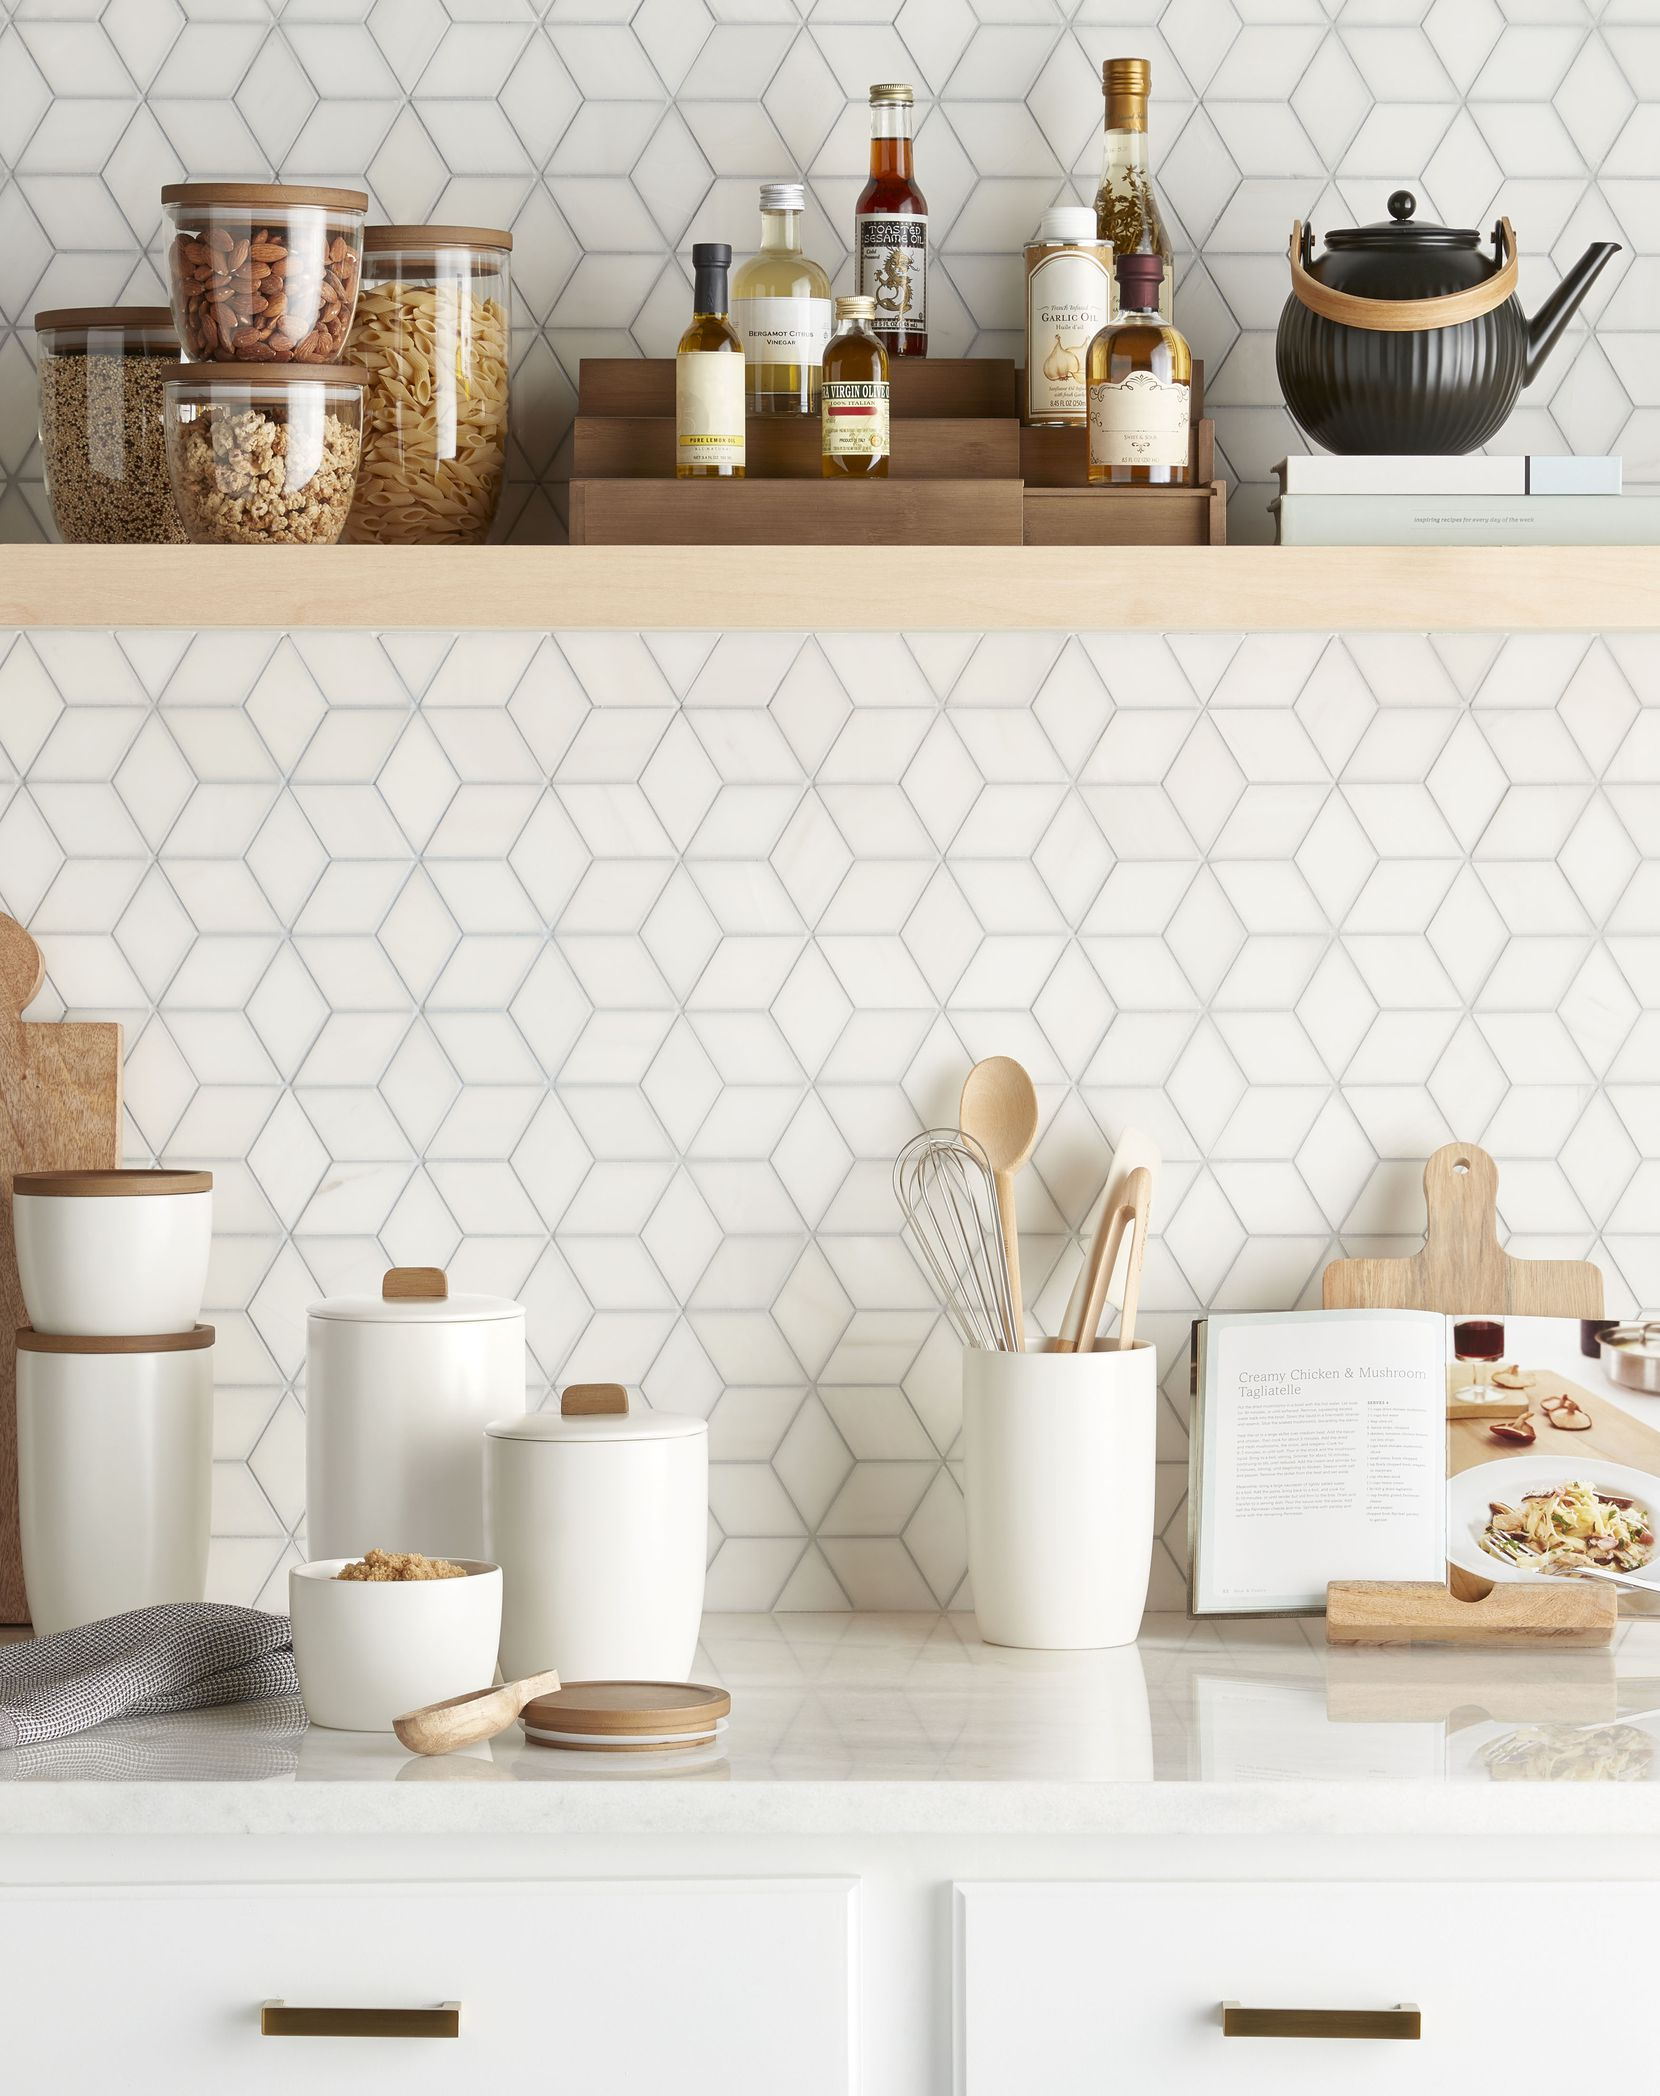 Kitchen and closets are big categories for The Container Store x KonMari collection.